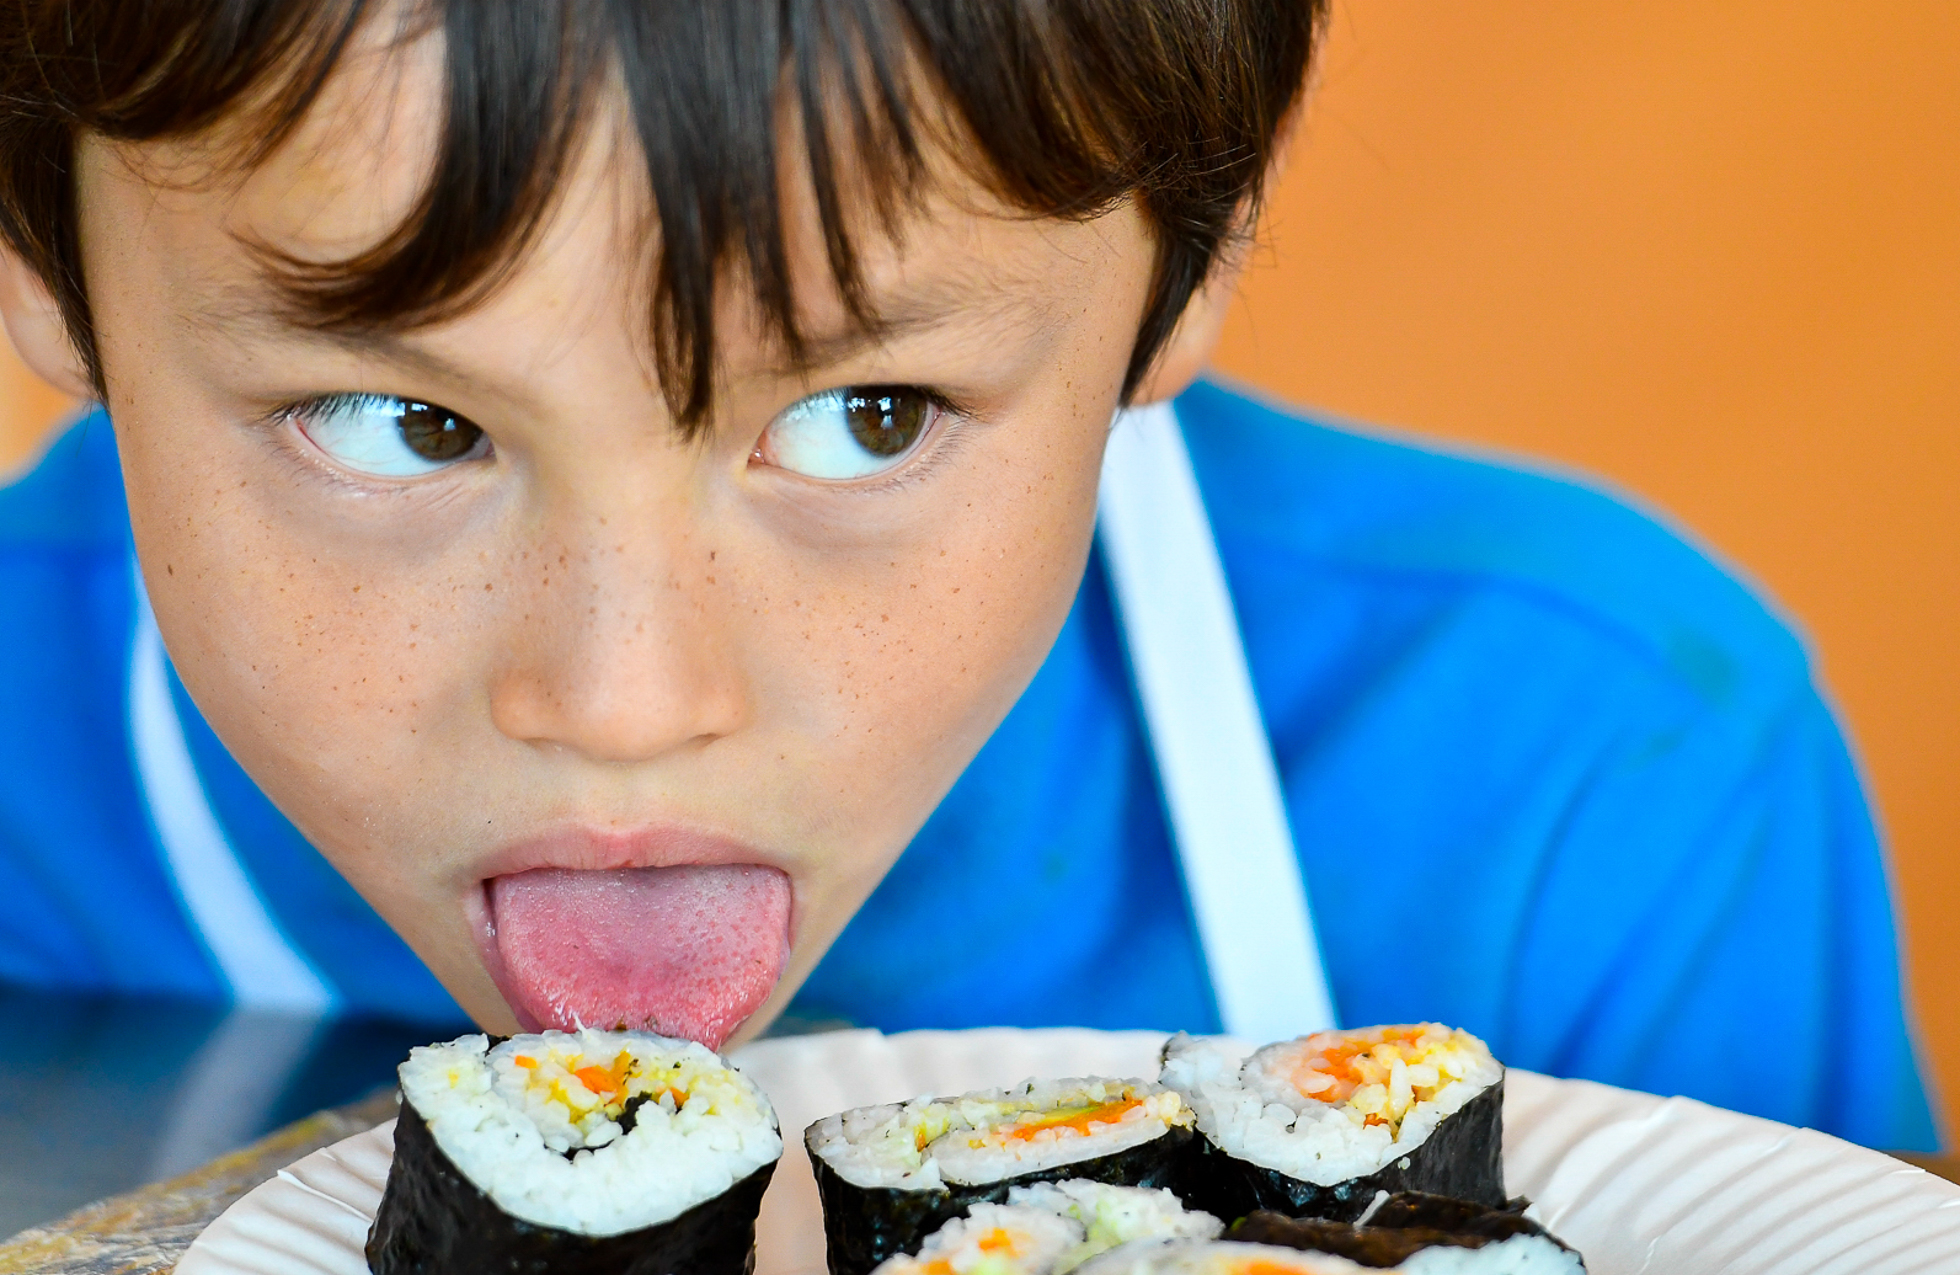 Joey Duffield, 8, uses his tongue to get a taste of sushi he made during a cooking class at Taste Buds Kitchen in Beverly, Wednesday, Oct. 18, 2017. [Wicked Local Staff Photo / David Sokol]